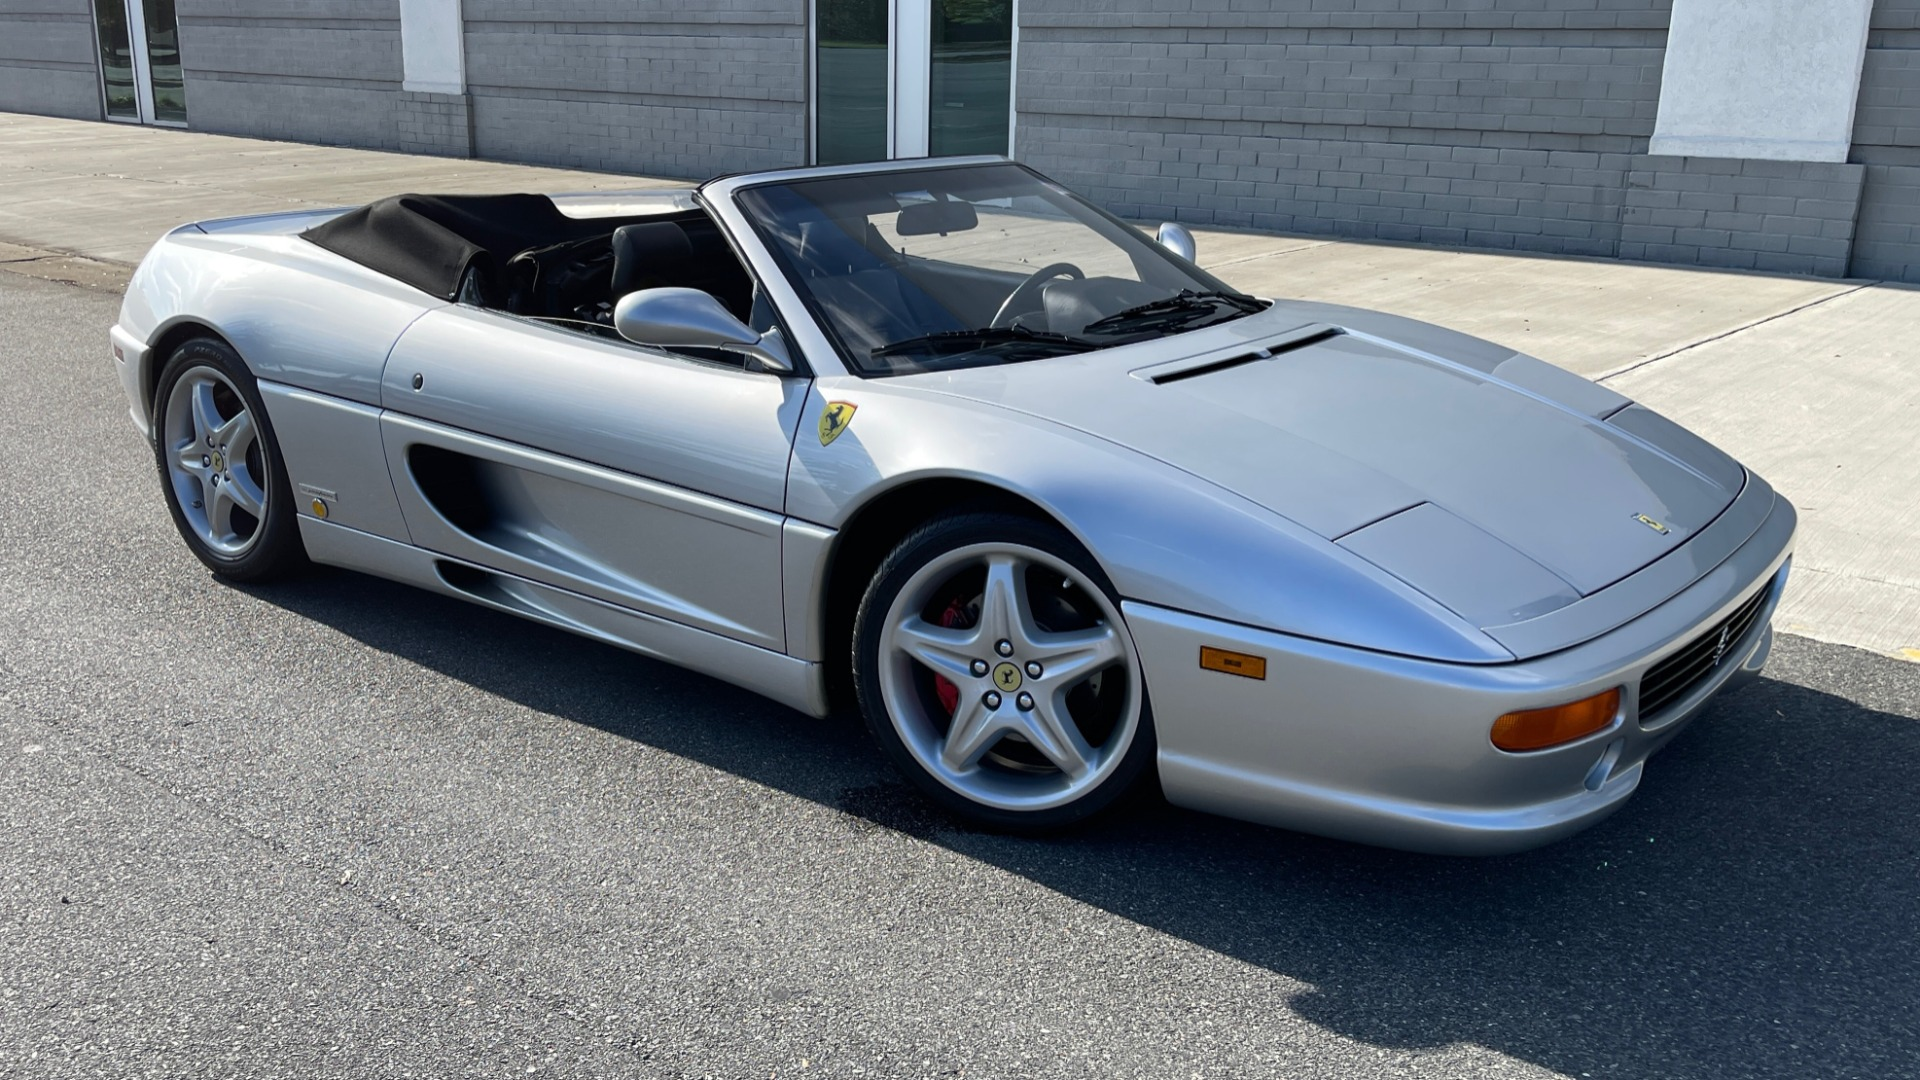 Used 1999 Ferrari F355 SPIDER for sale $95,000 at Formula Imports in Charlotte NC 28227 5